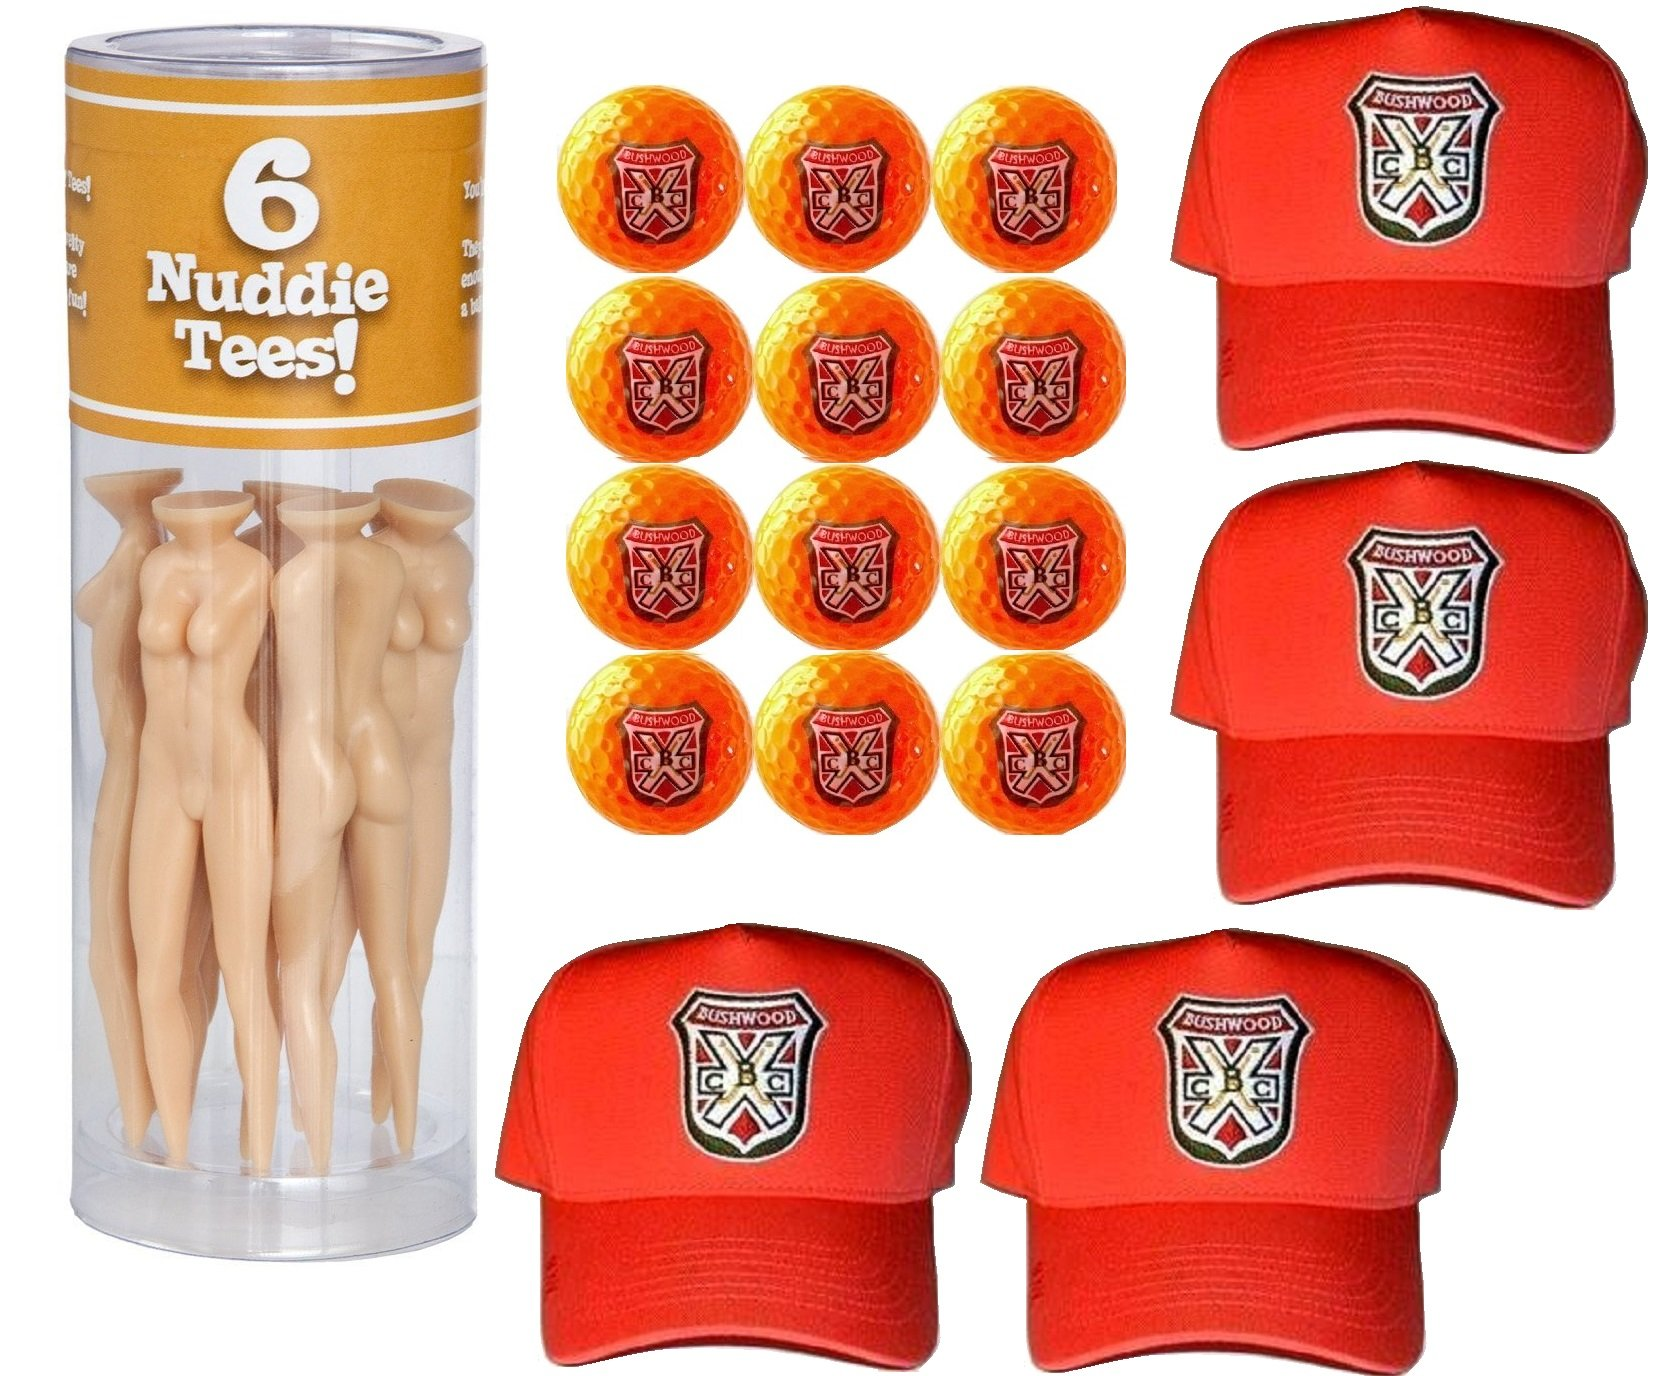 Caddyshack Danny Noonan Foursome Pack (Hats, Naked Lady Tees, Orange Bushwood Golf Balls) by A&R Collectibles